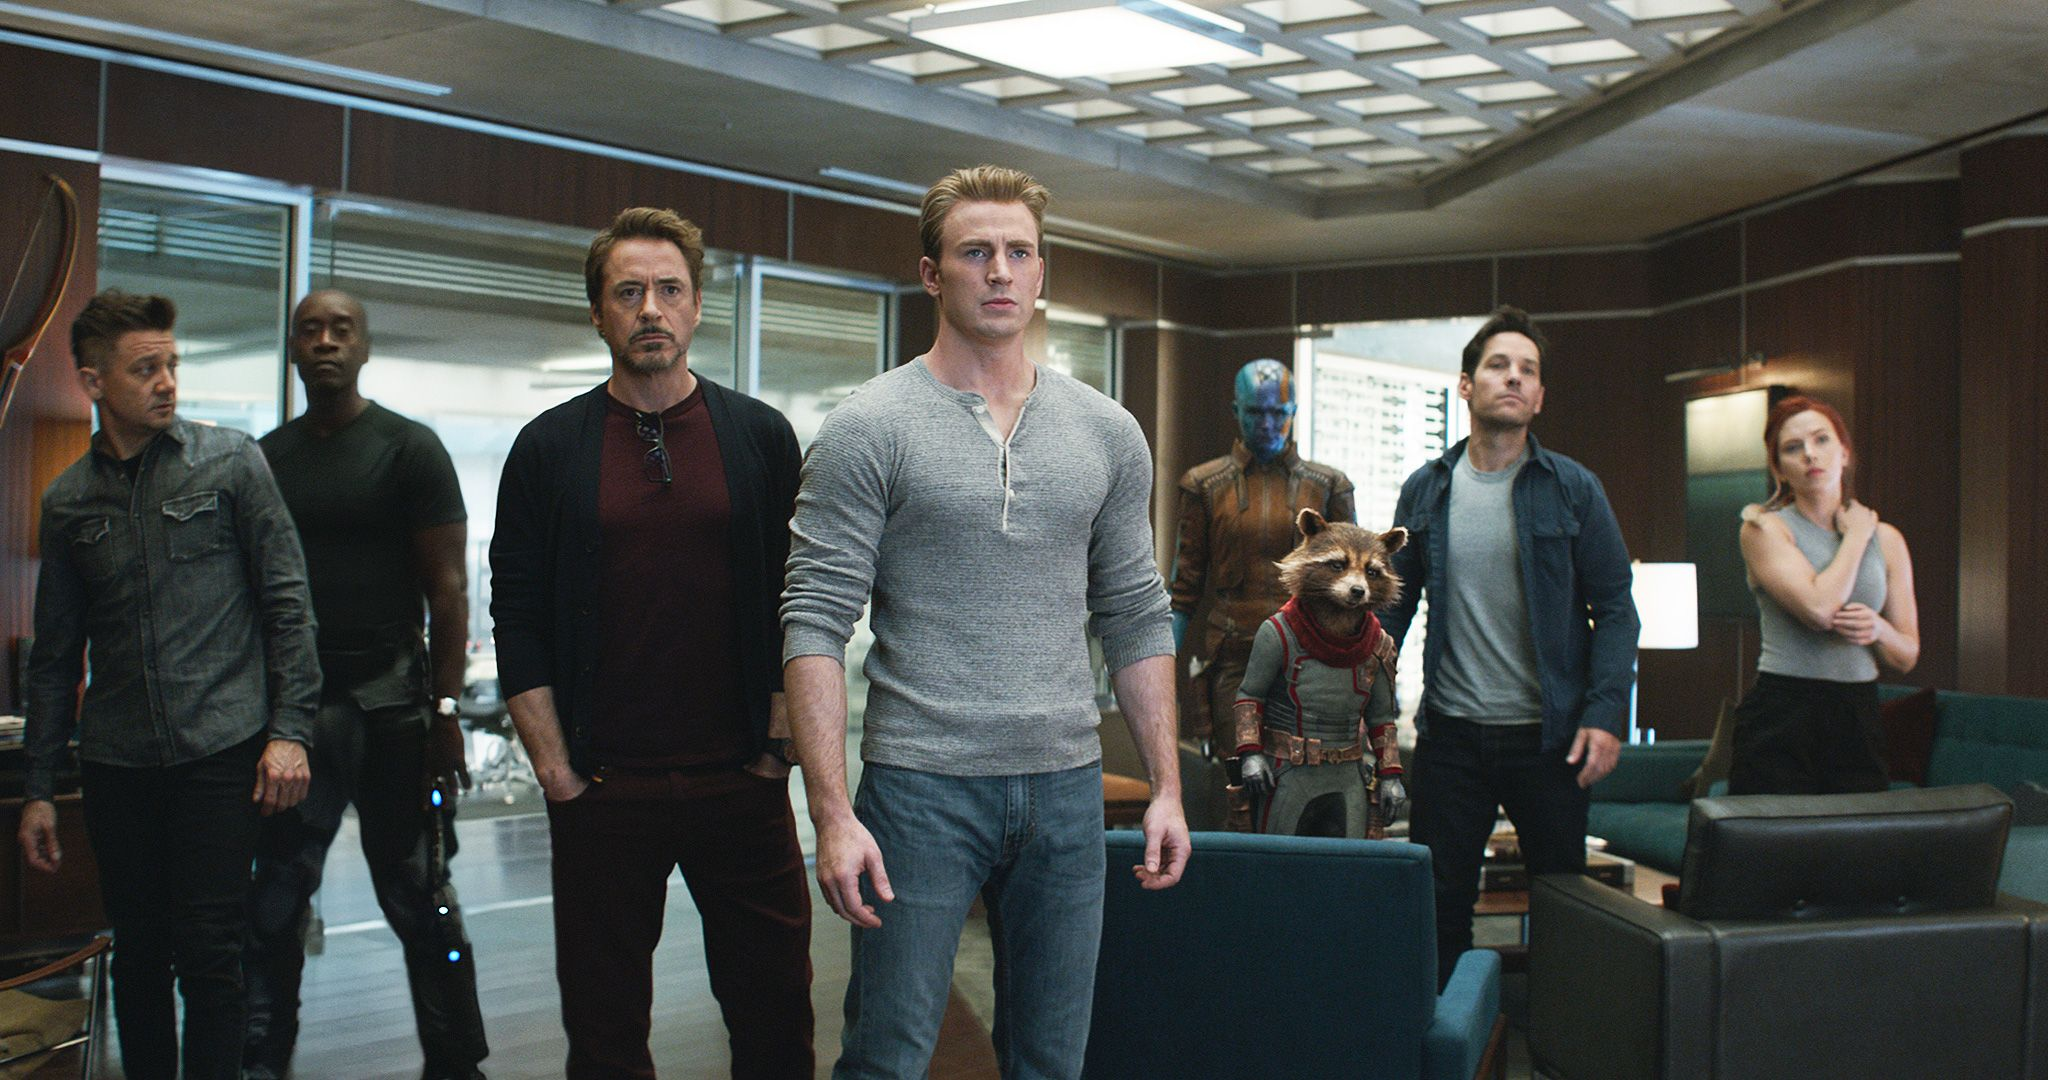 Avengers: Endgame stars AREN'T world's highest-paid actors - here's who beat them